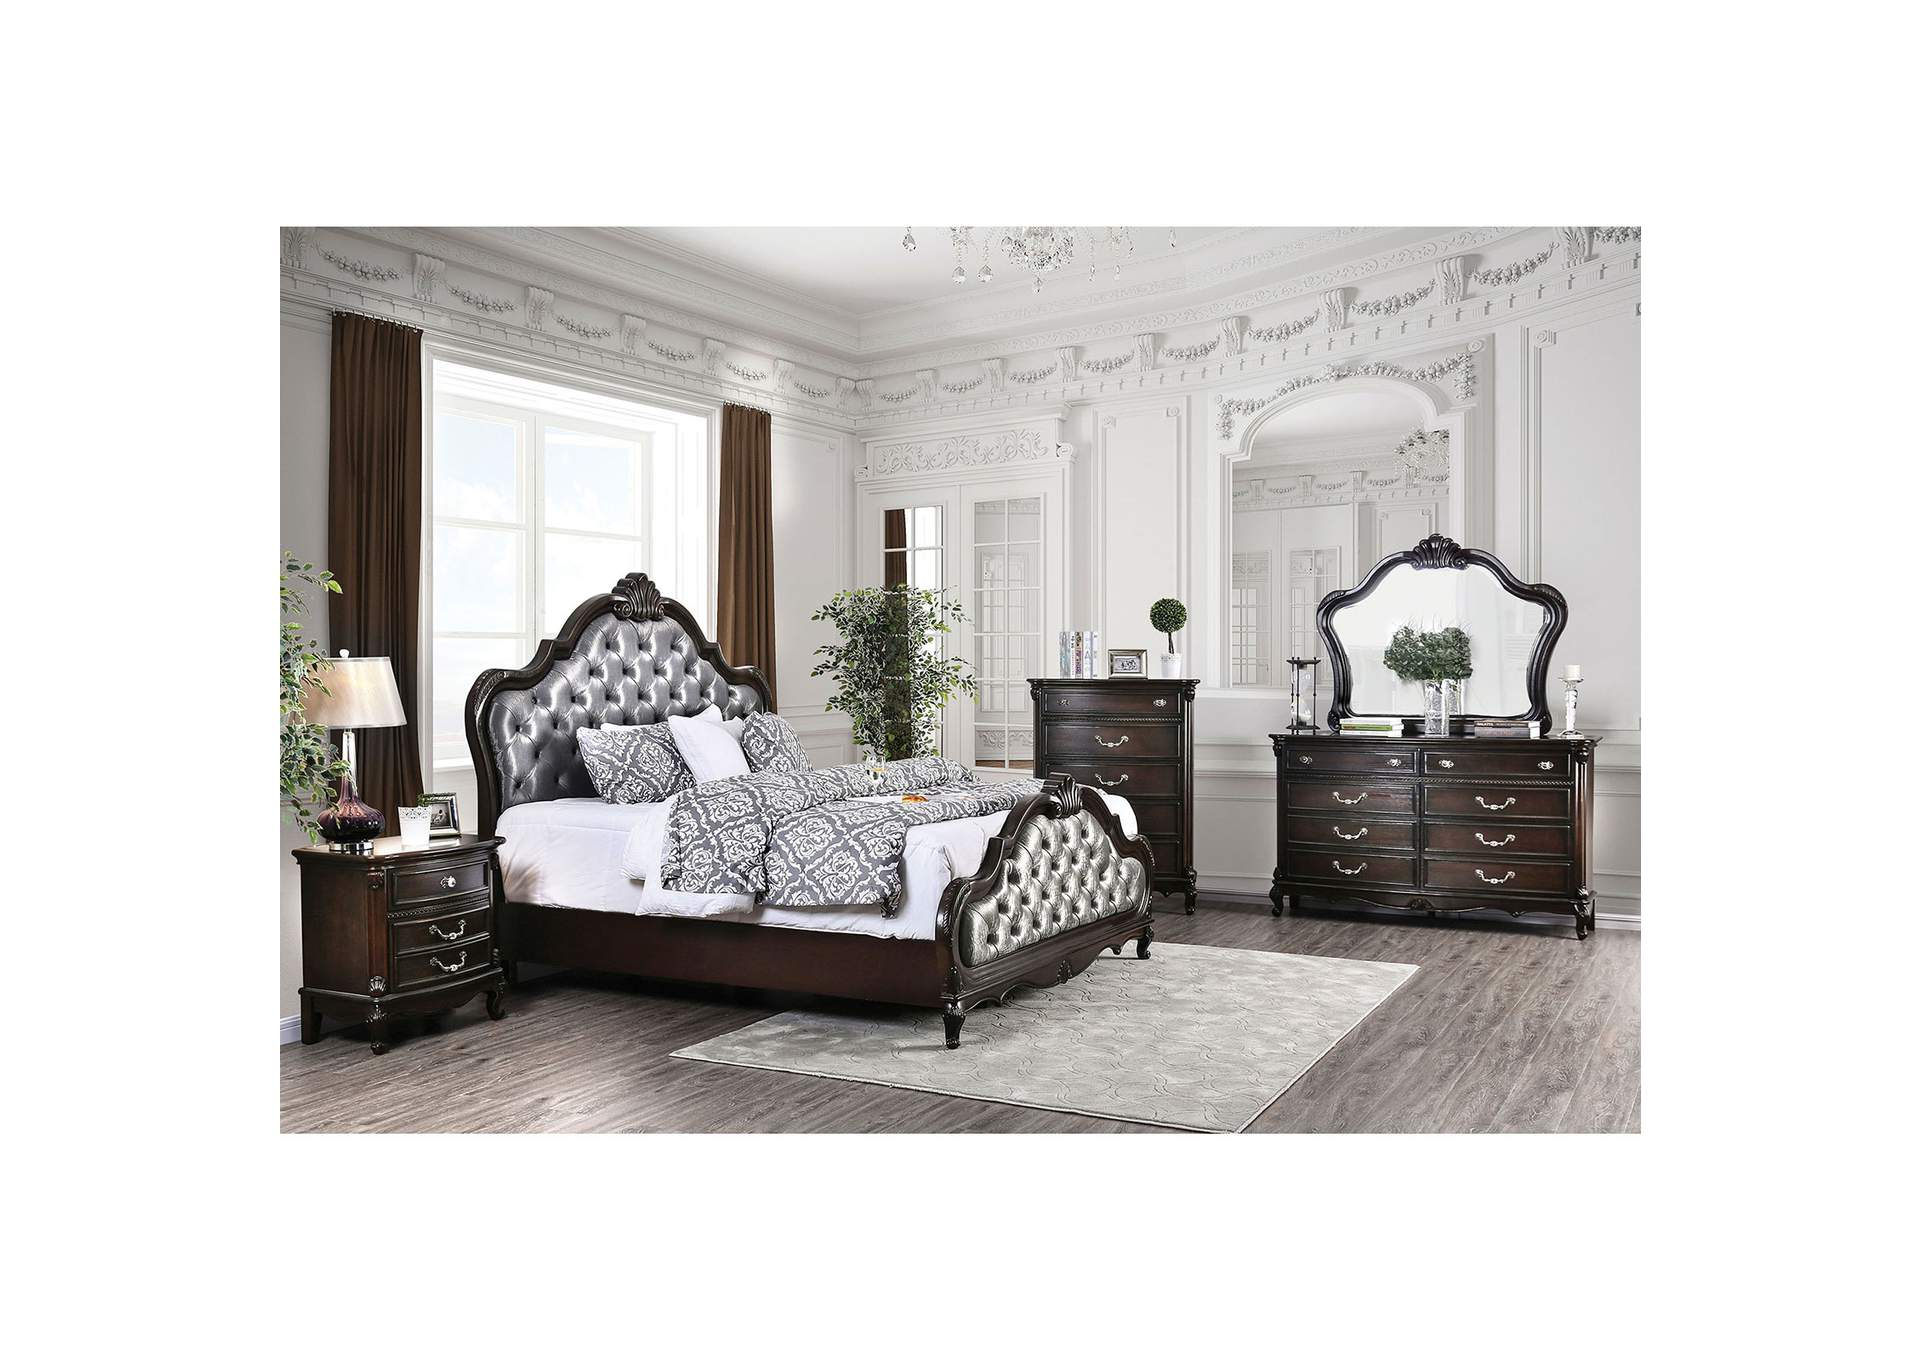 Bethesda Espresso Upholstered California King Panel Bed w/Dresser and Mirror,Furniture of America